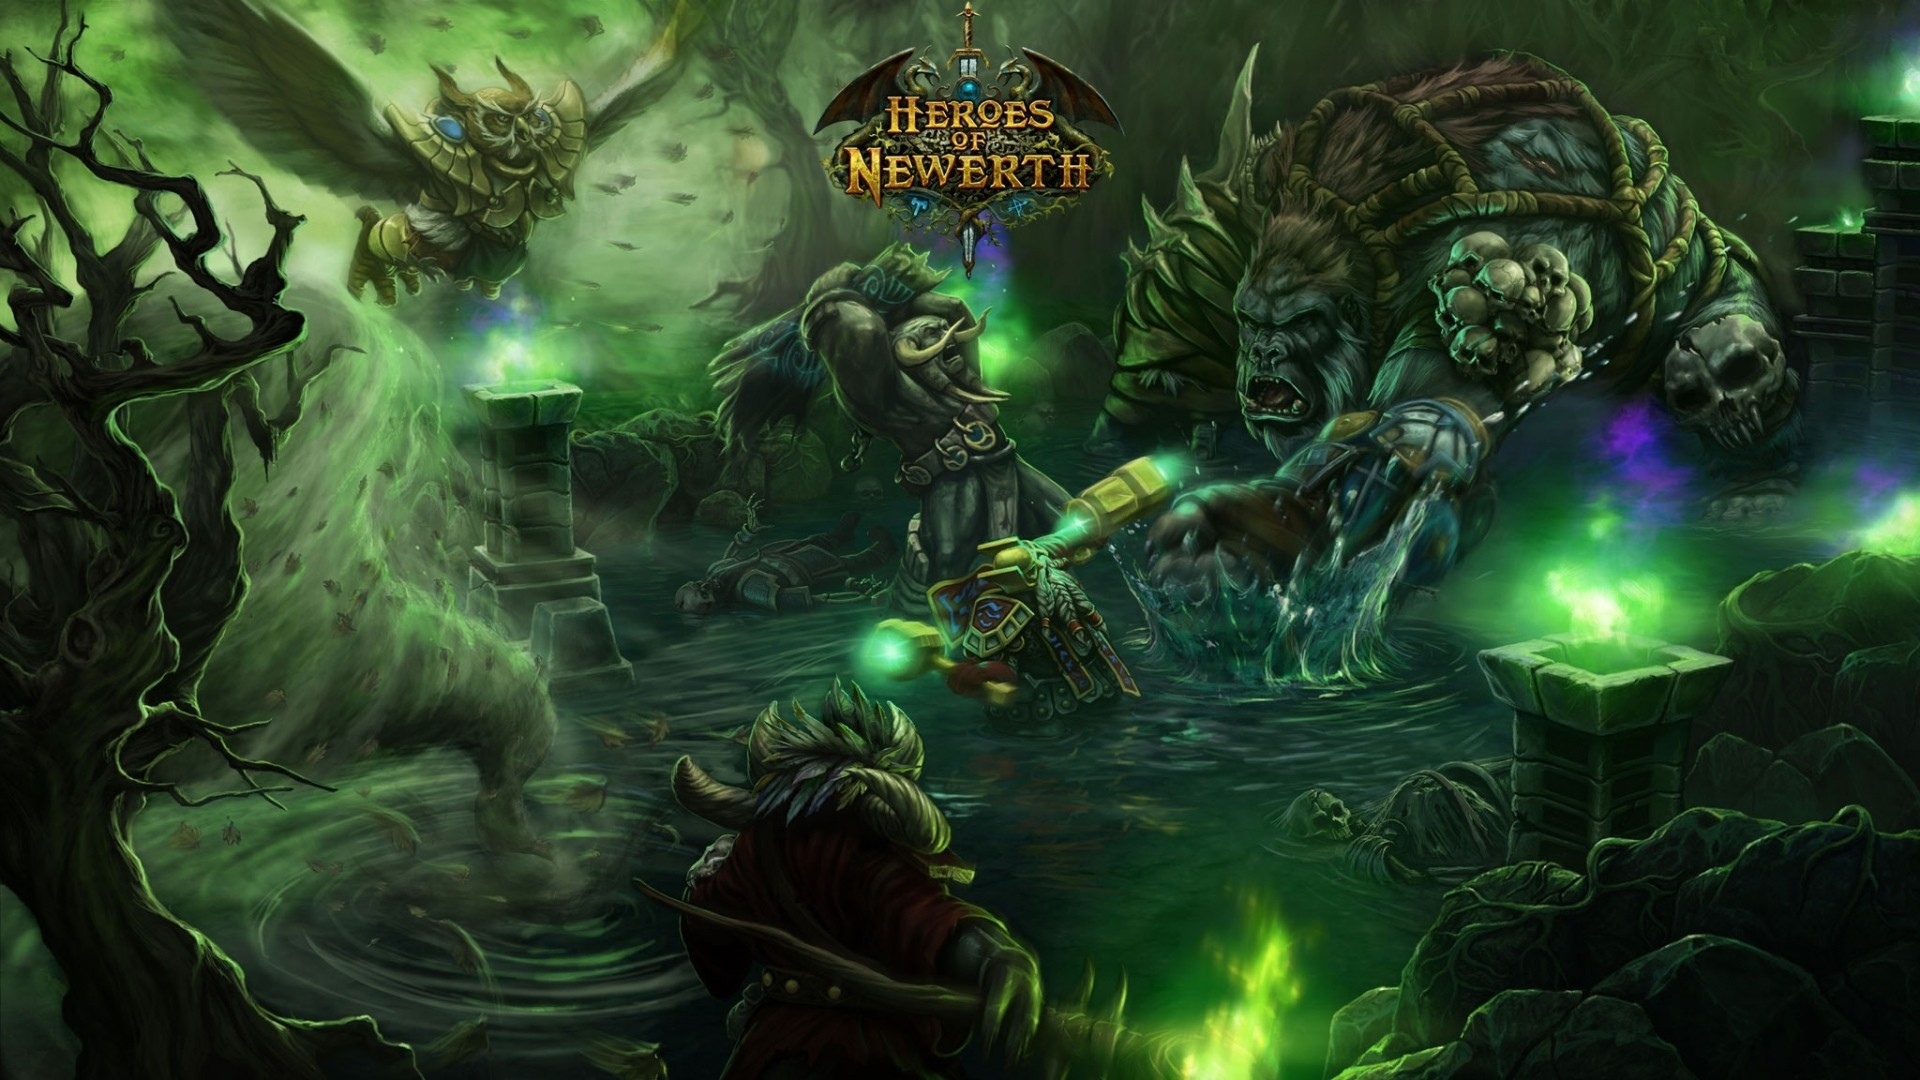 1920x1080 Preview Wallpaper World Of Warcraft Heroes Newerth Characters Energy